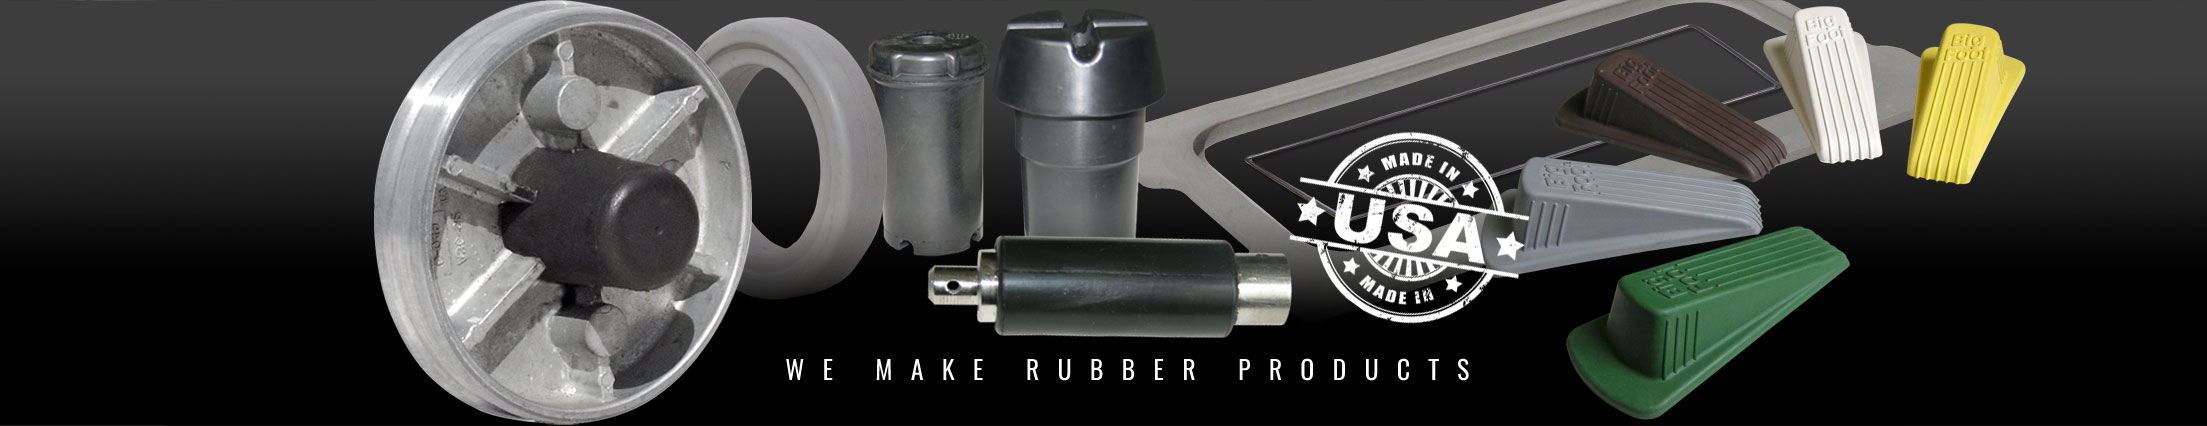 Top rubber moldiner. We make rubber products.